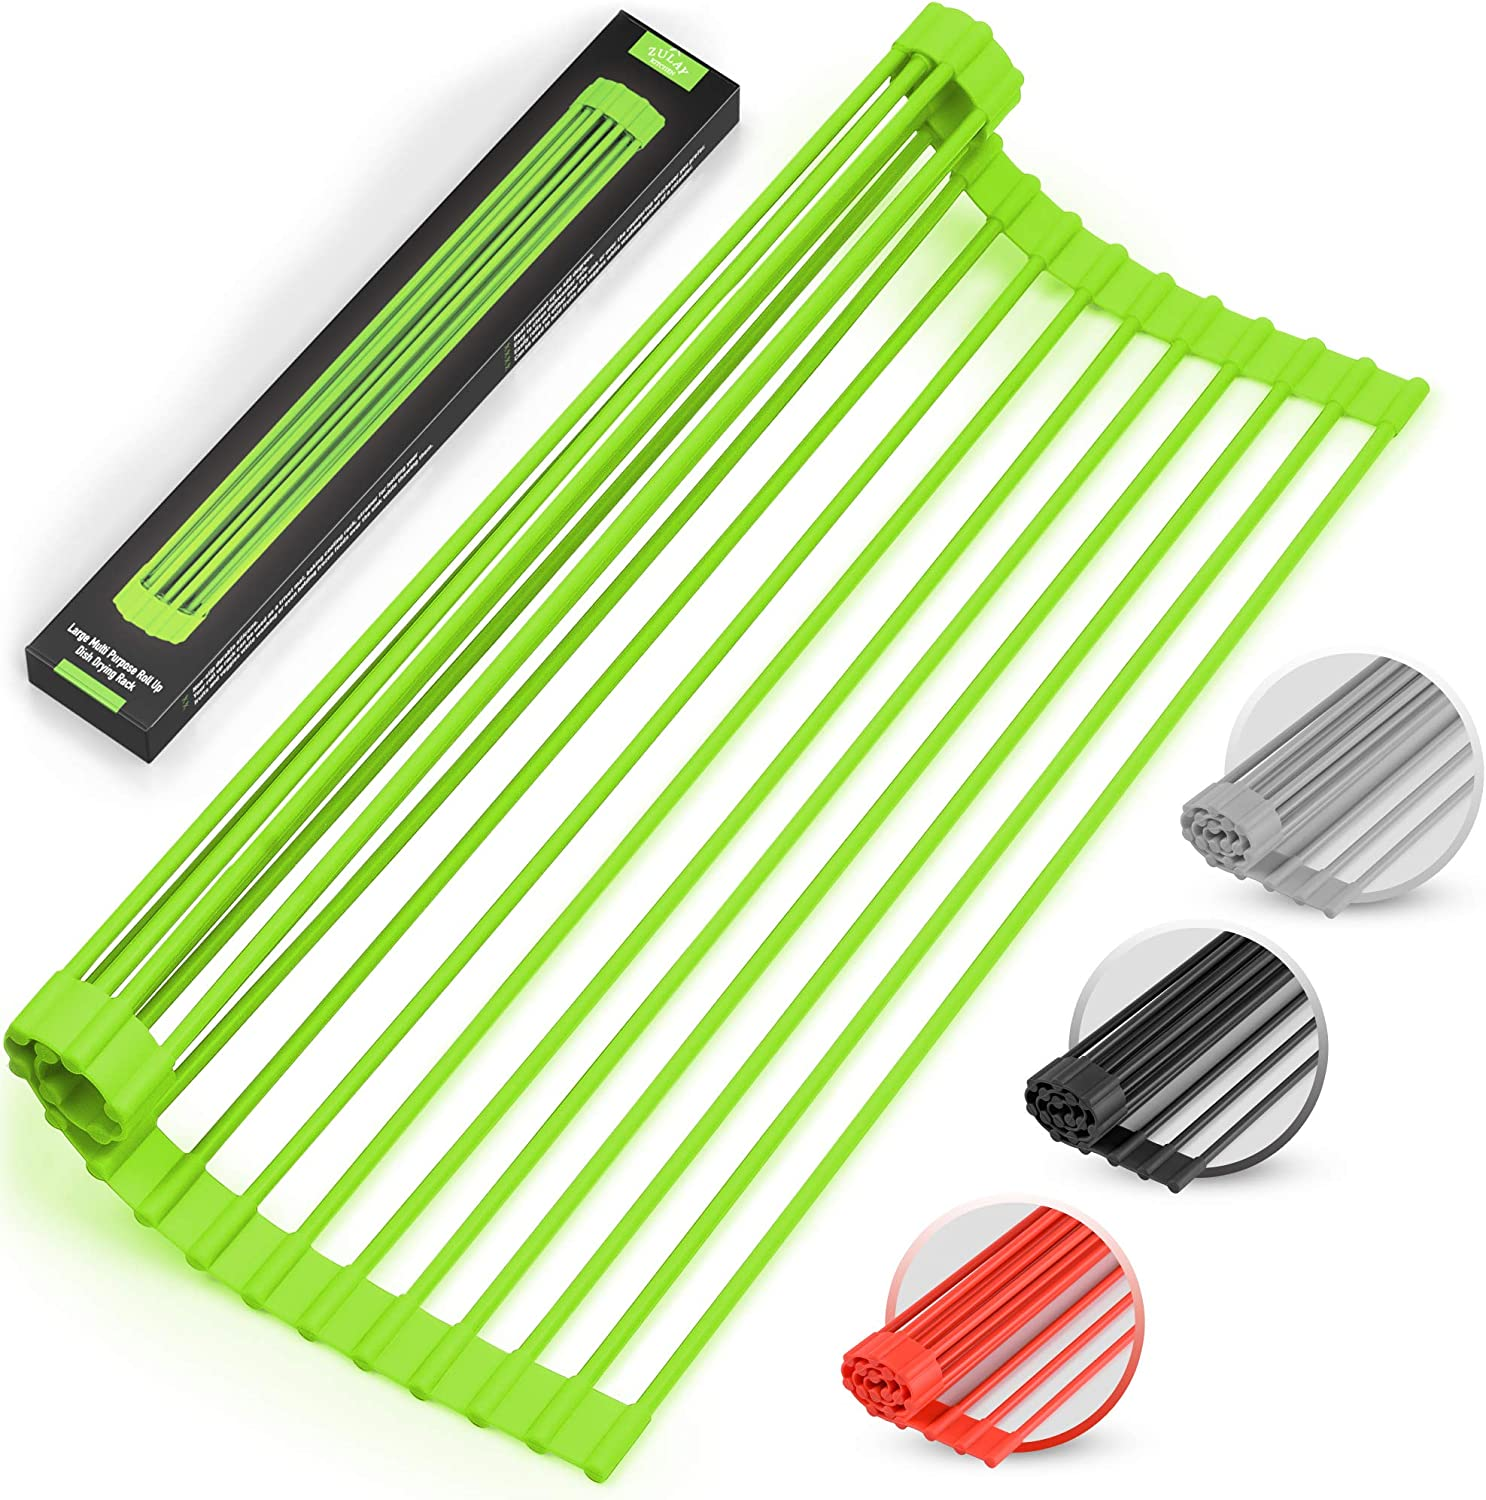 """Large 20.5"""" Multipurpose Roll Up Dish Drying Rack & Trivet - Heavy Duty, Silicone-Coated Stainless Steel Roll Up Rack, Rolls Out Over any Sink - Versatile Roll Up Sink Drying Rack by Zulay (Green)"""